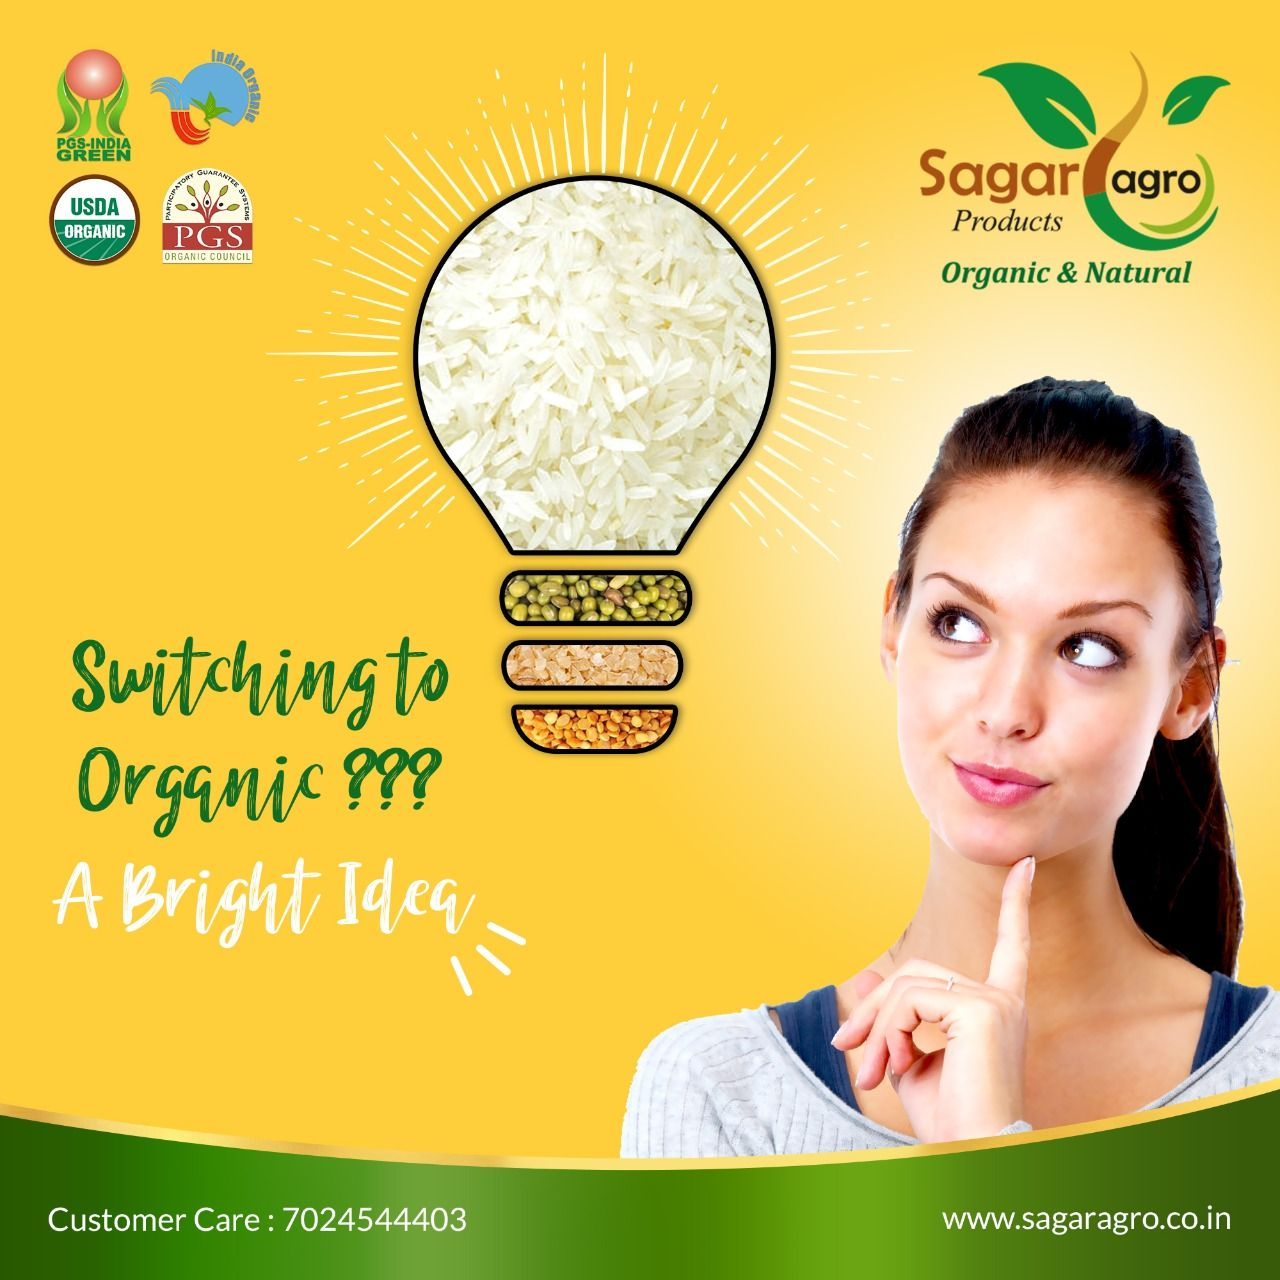 Switch to #OrganicFood today for a #Better #Ideas in life. #SagarAgro offers #GoodHealth in packed organic products just for you. Happy #Eating #Happyliving. Visit: www.sagaragro.co.in #Organic #Natural #OrganicFood #OrganicProducts #OrganicFarming #PesticidesFree #ChemicalFree #Healthy